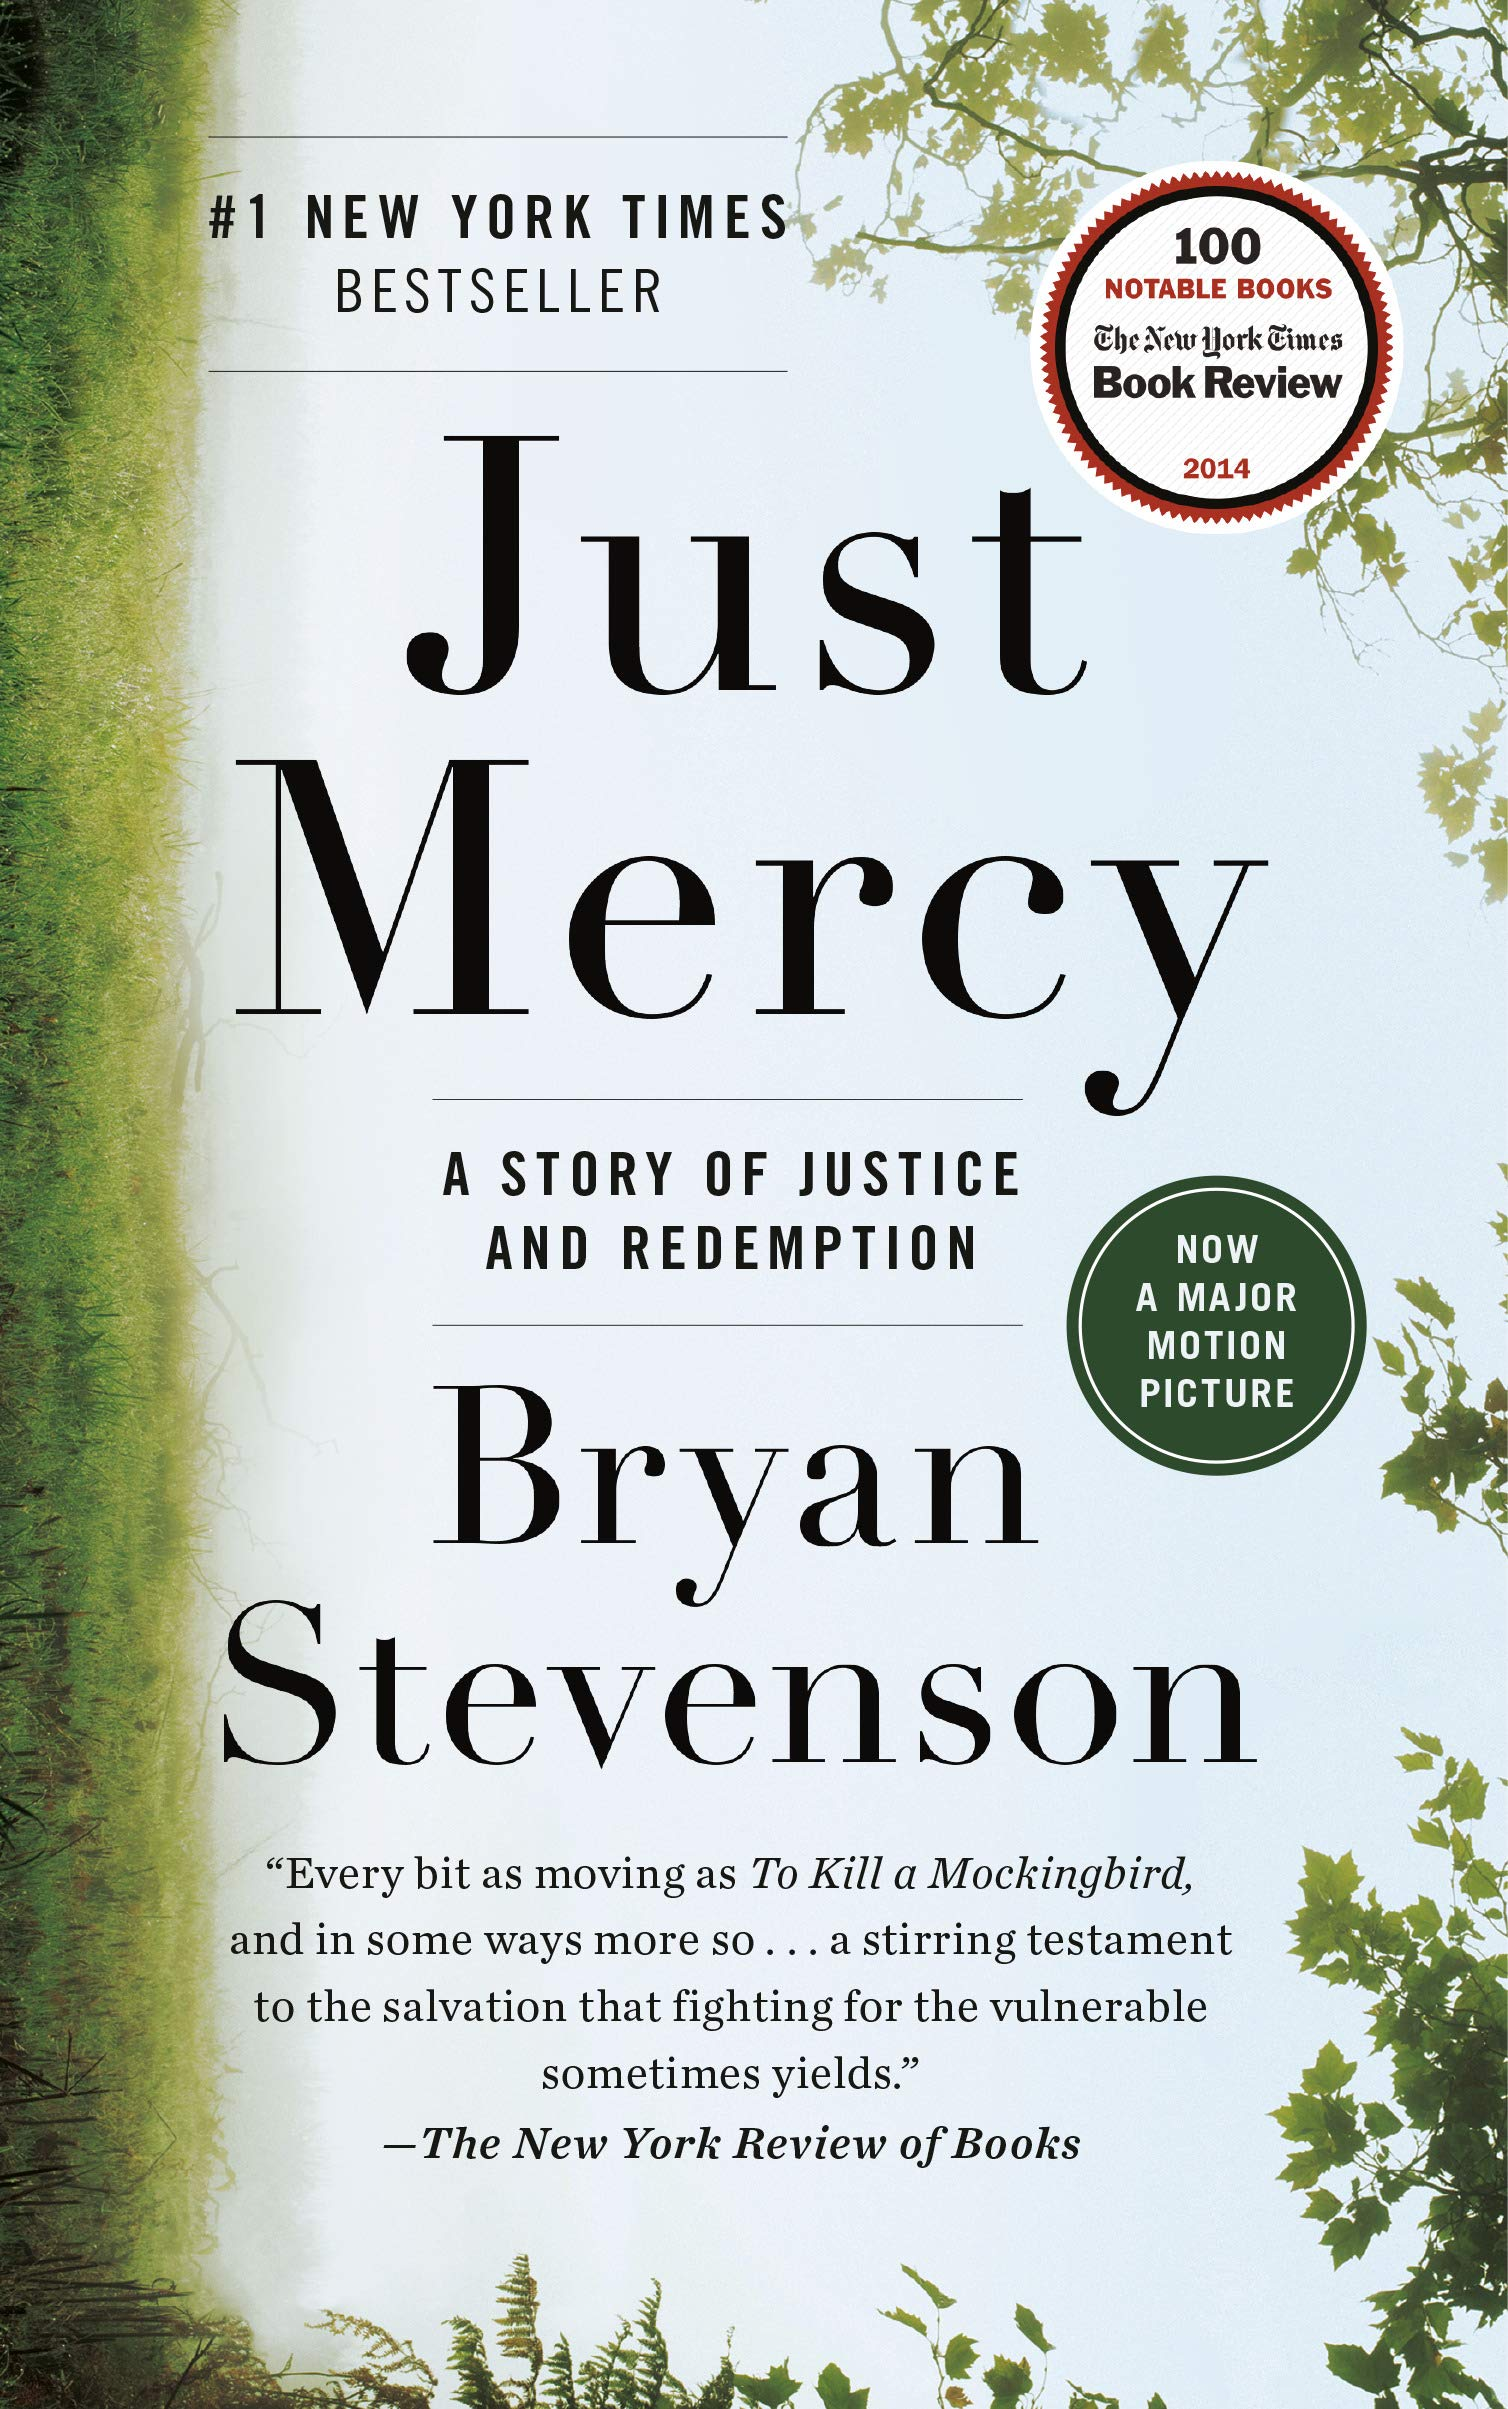 Image of Just Mercy book cover